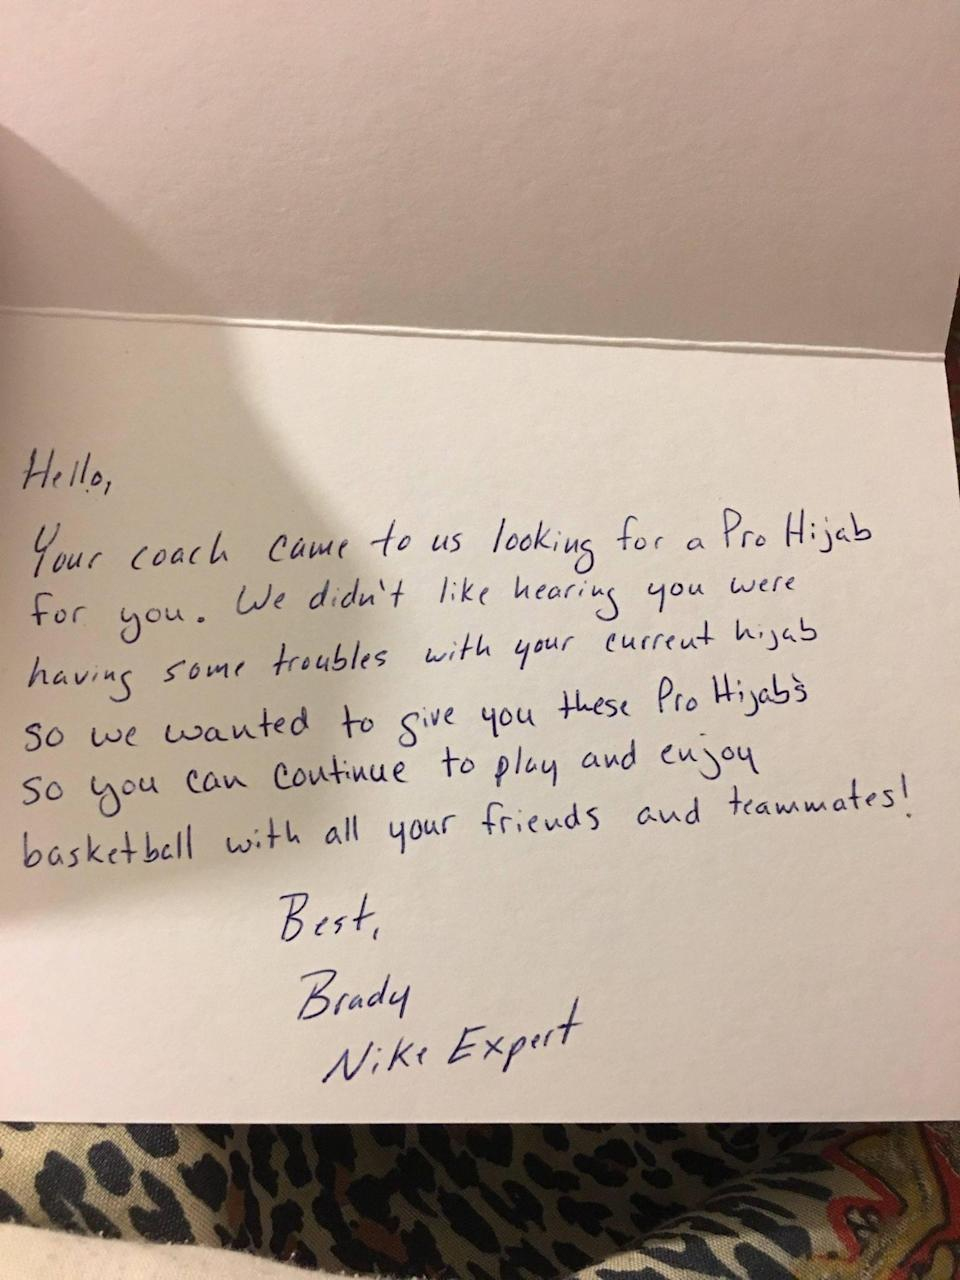 The letter Camrin Hampton received from 'Brady,' the mysterious Nike customer service agent whose good deed provided her the hijab she needed to keep playing basketball. (Photo via Camrin Hampton)